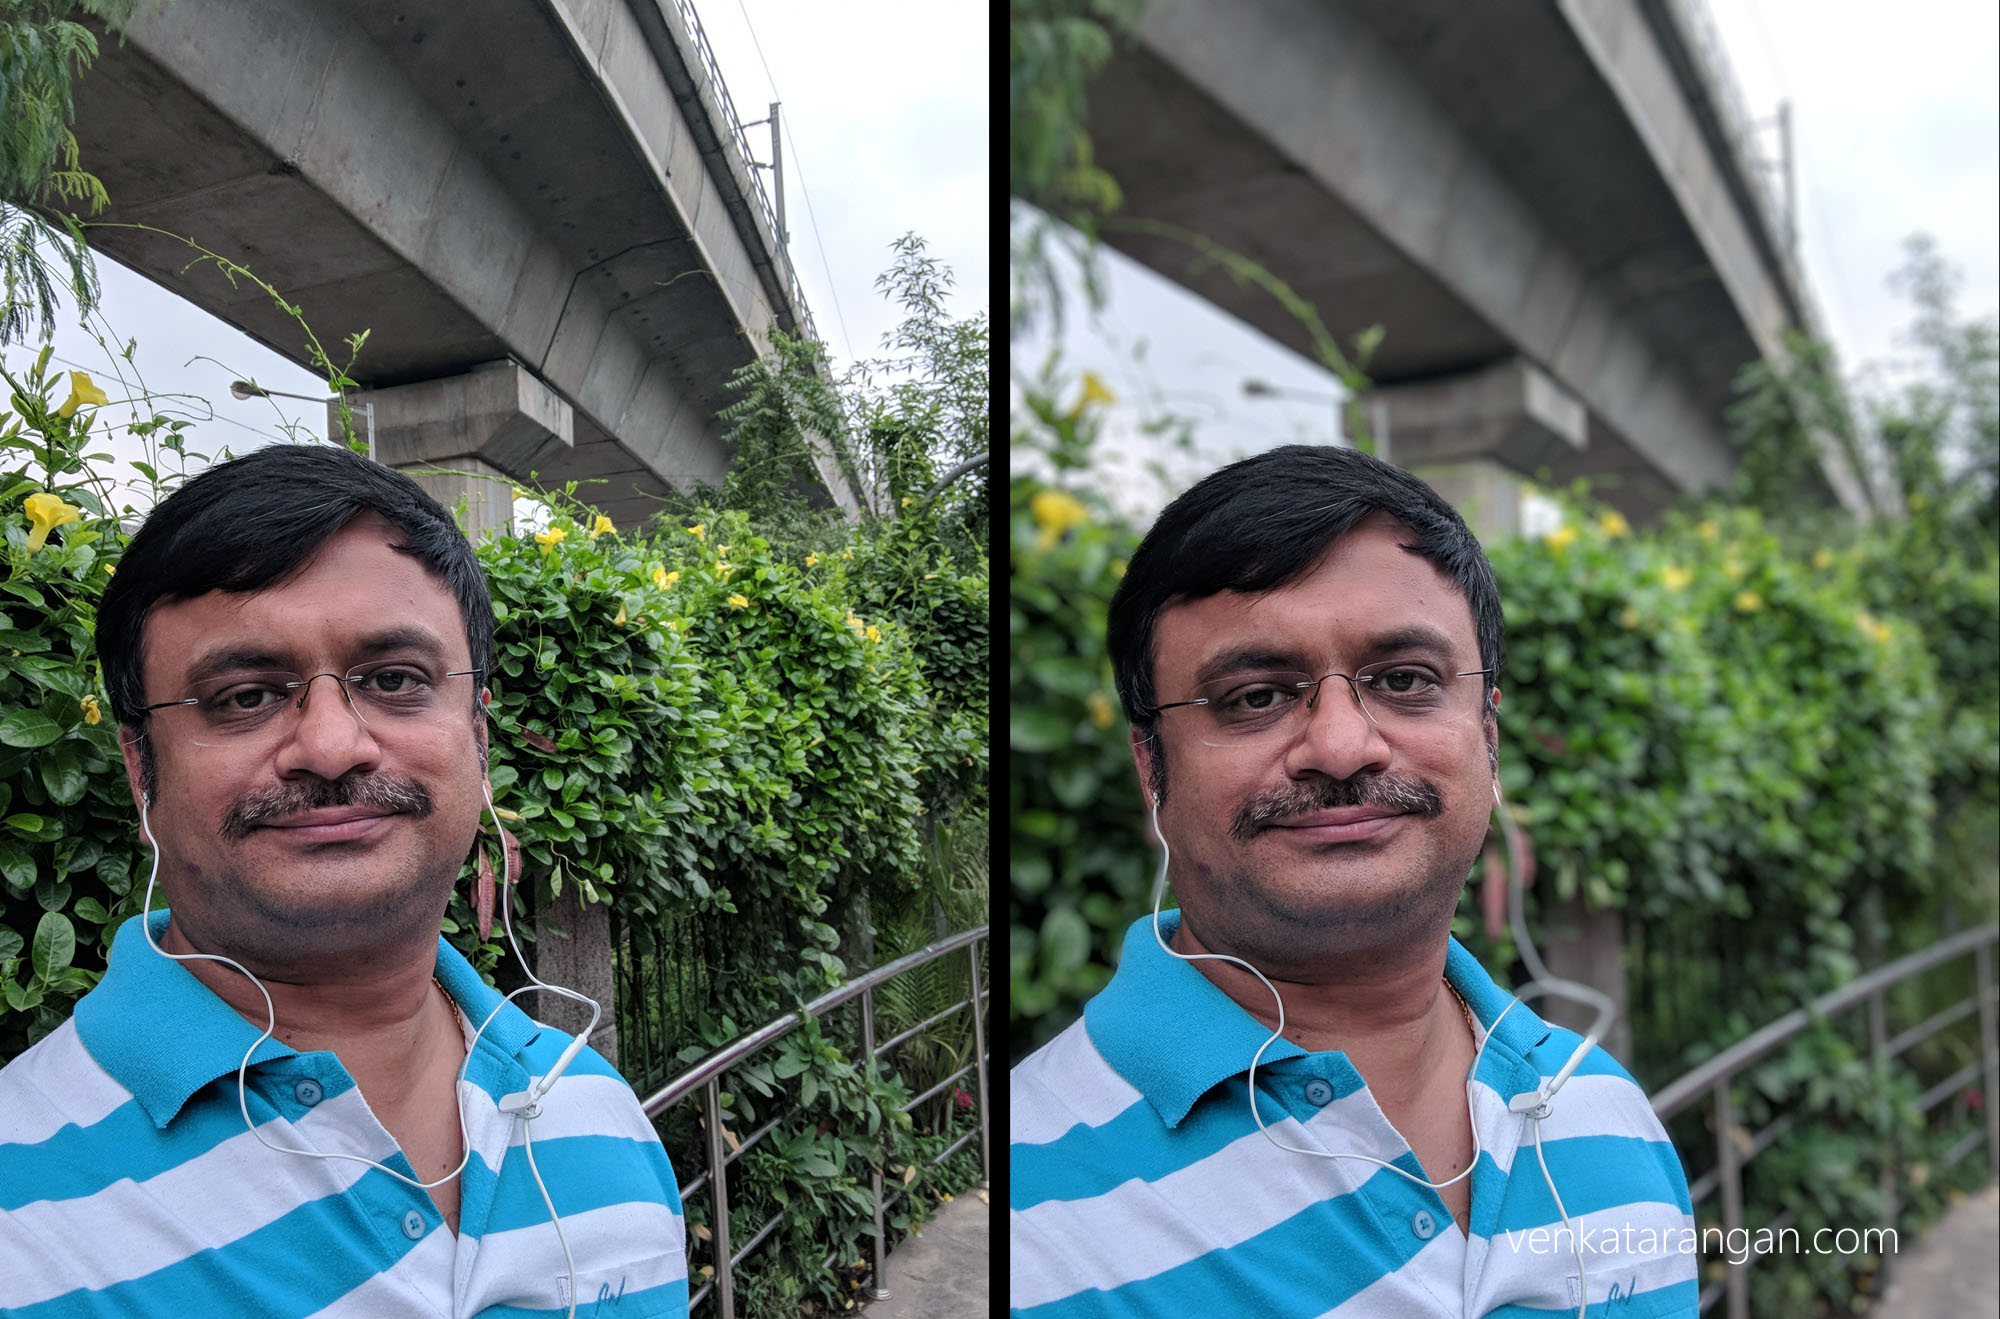 On Left Selfie from the front camera; On Right is Bokeh effect added automatically after processing, which takes a second